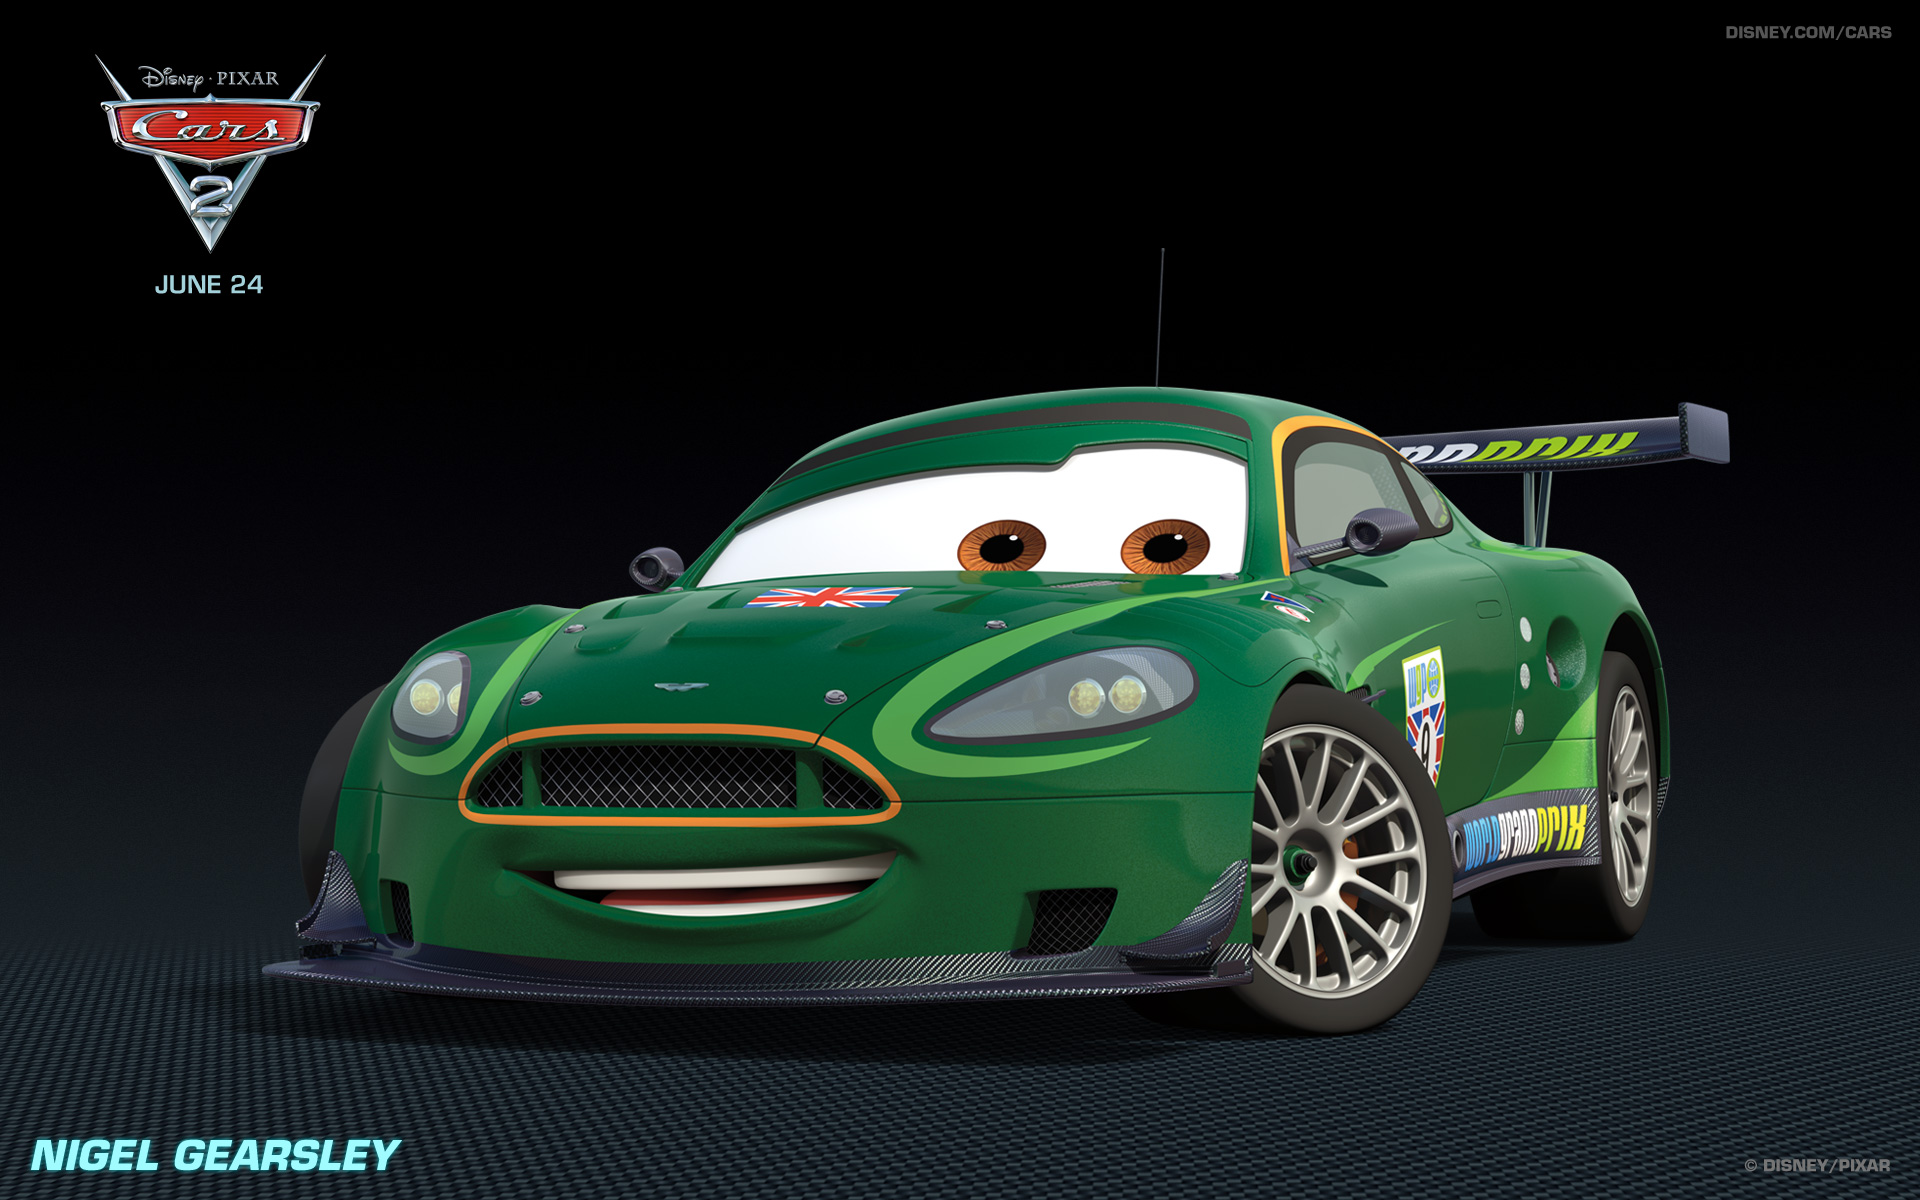 nigel gearsley - Cars The Movie 2 Characters